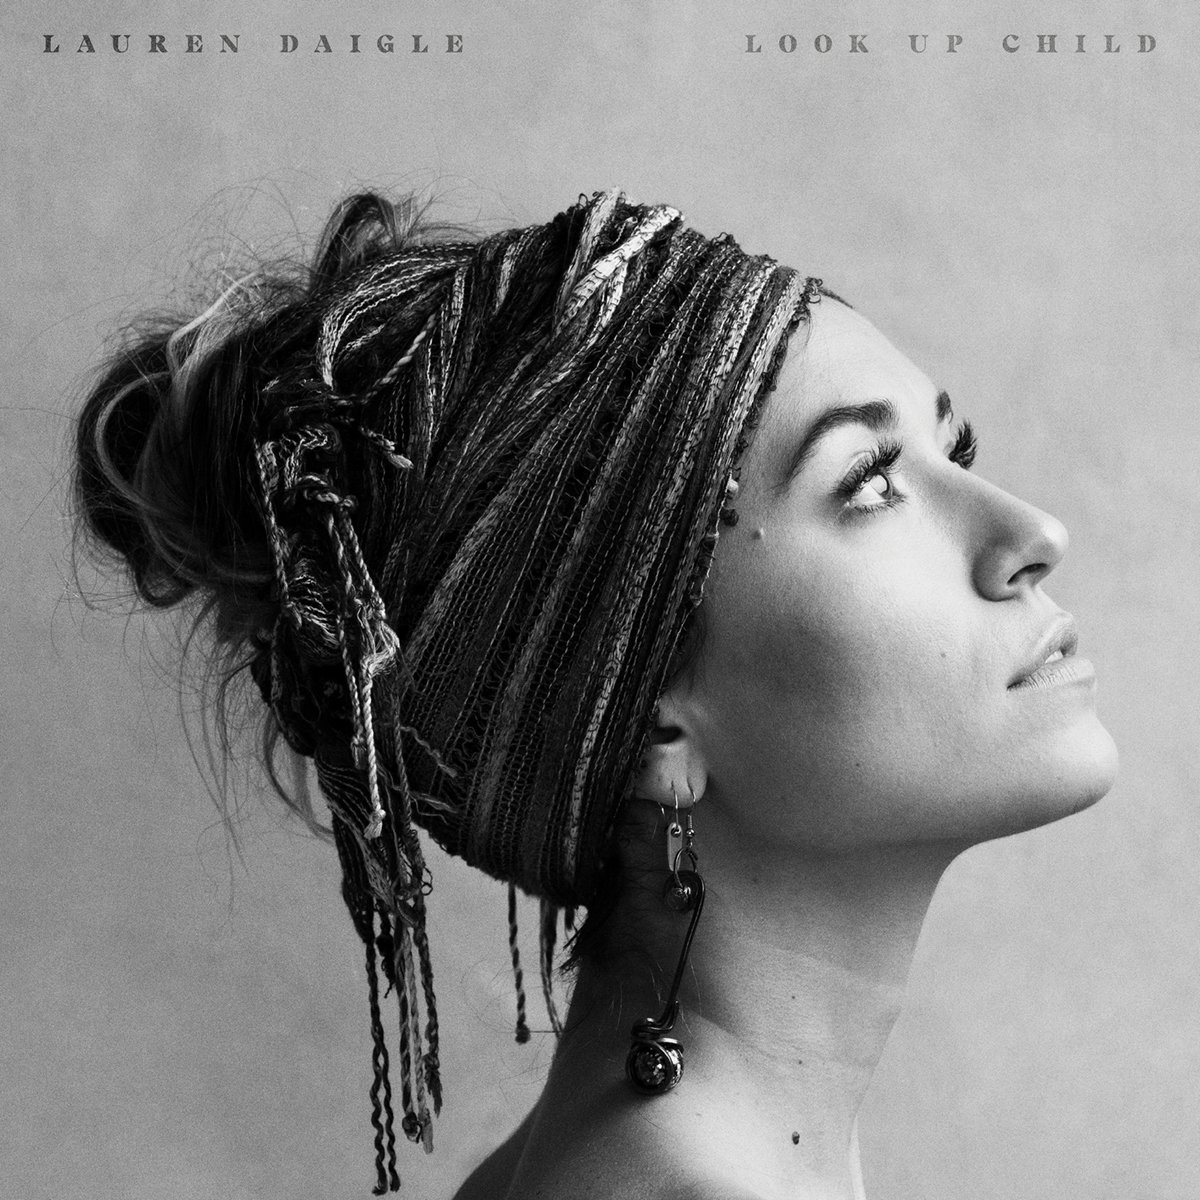 Image result for Lauren Daigle